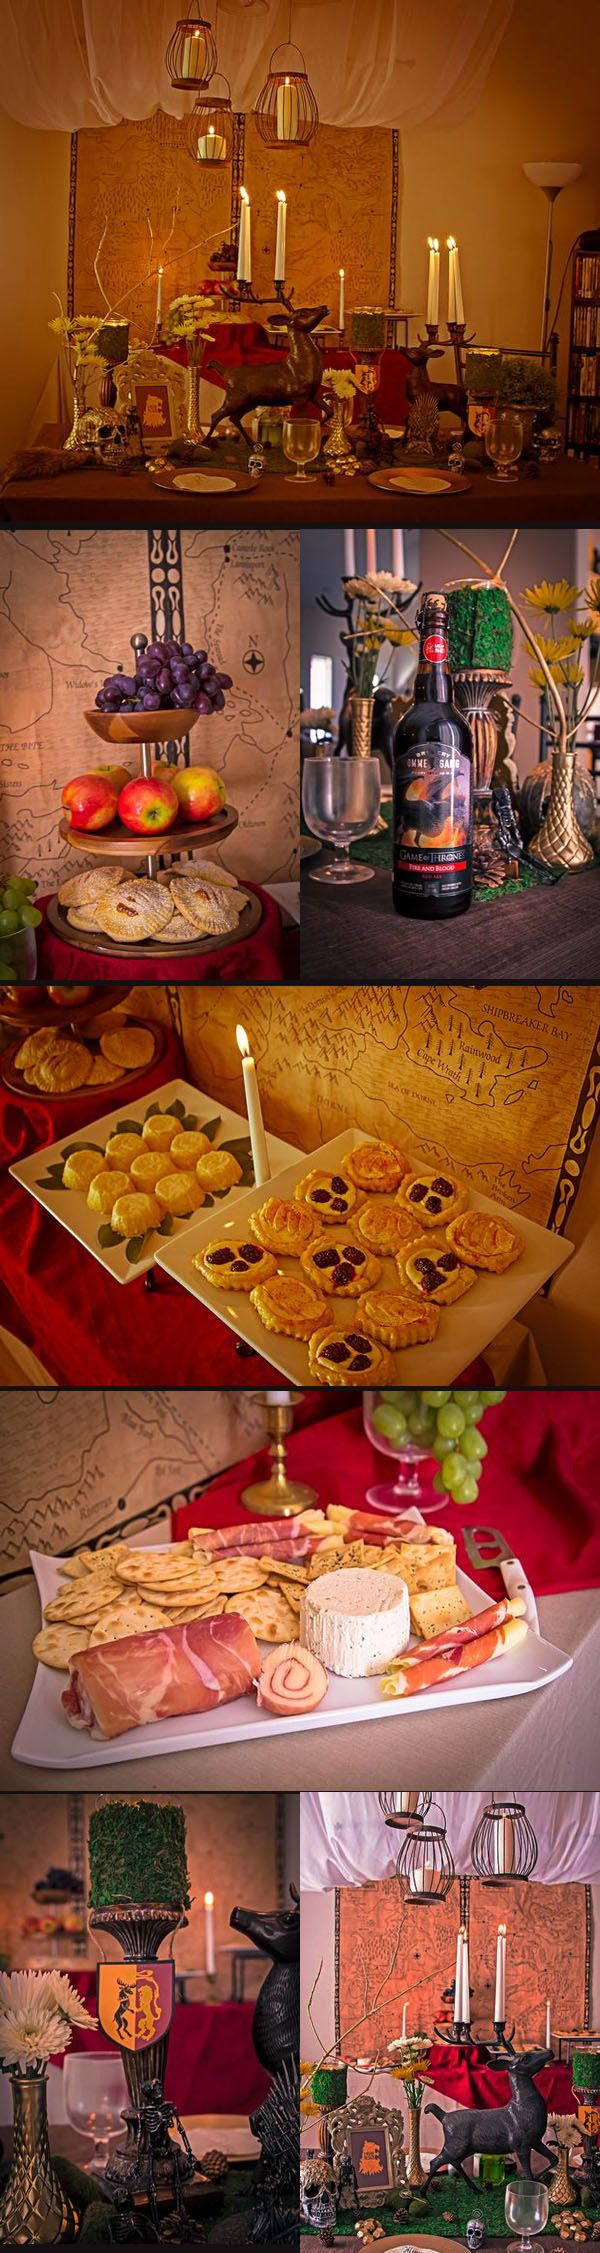 A Game of Thrones Party ideas for the buffet table.  Notice the map used as a backdrop.  Actually, the food selections are straightforward: cheese tray, variety of fruit, roast chicken, potatoes, and wine.  Lots of wine.